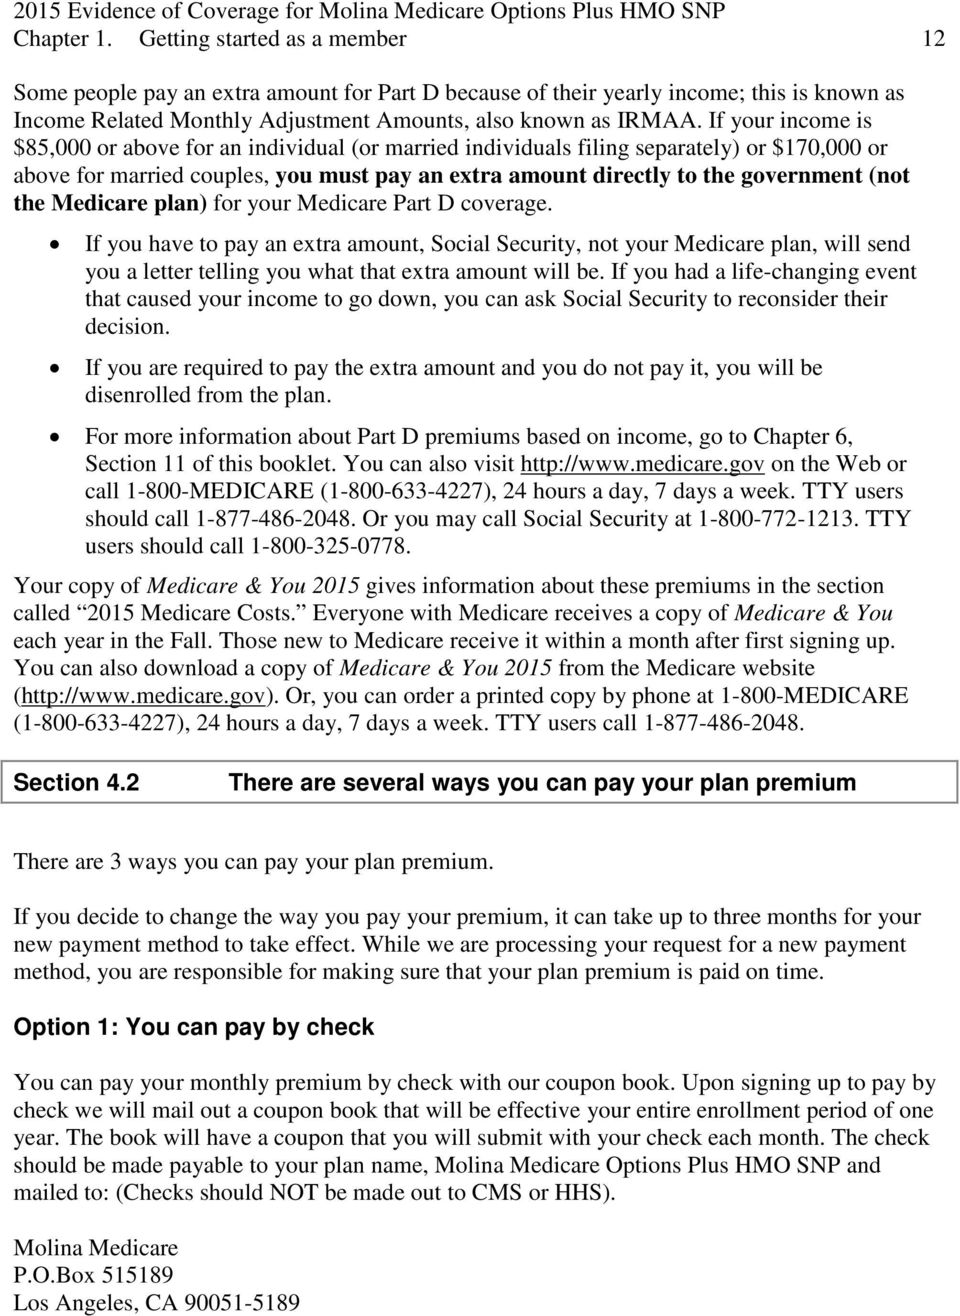 the Medicare plan) for your Medicare Part D coverage. If you have to pay an extra amount, Social Security, not your Medicare plan, will send you a letter telling you what that extra amount will be.